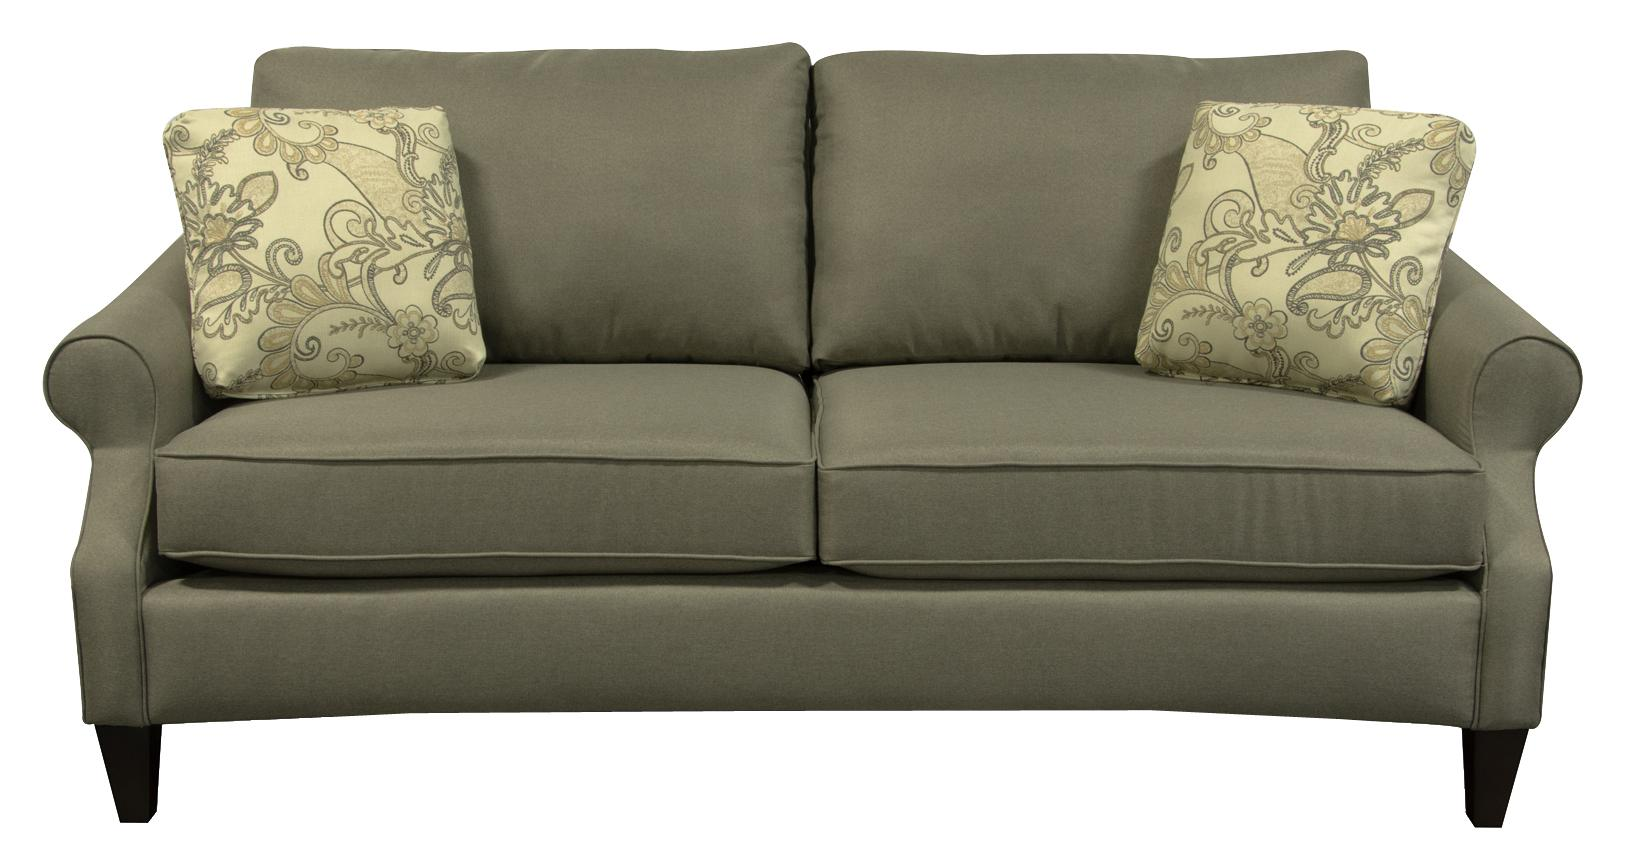 England Duke Living Room Sofa - Item Number: 3135